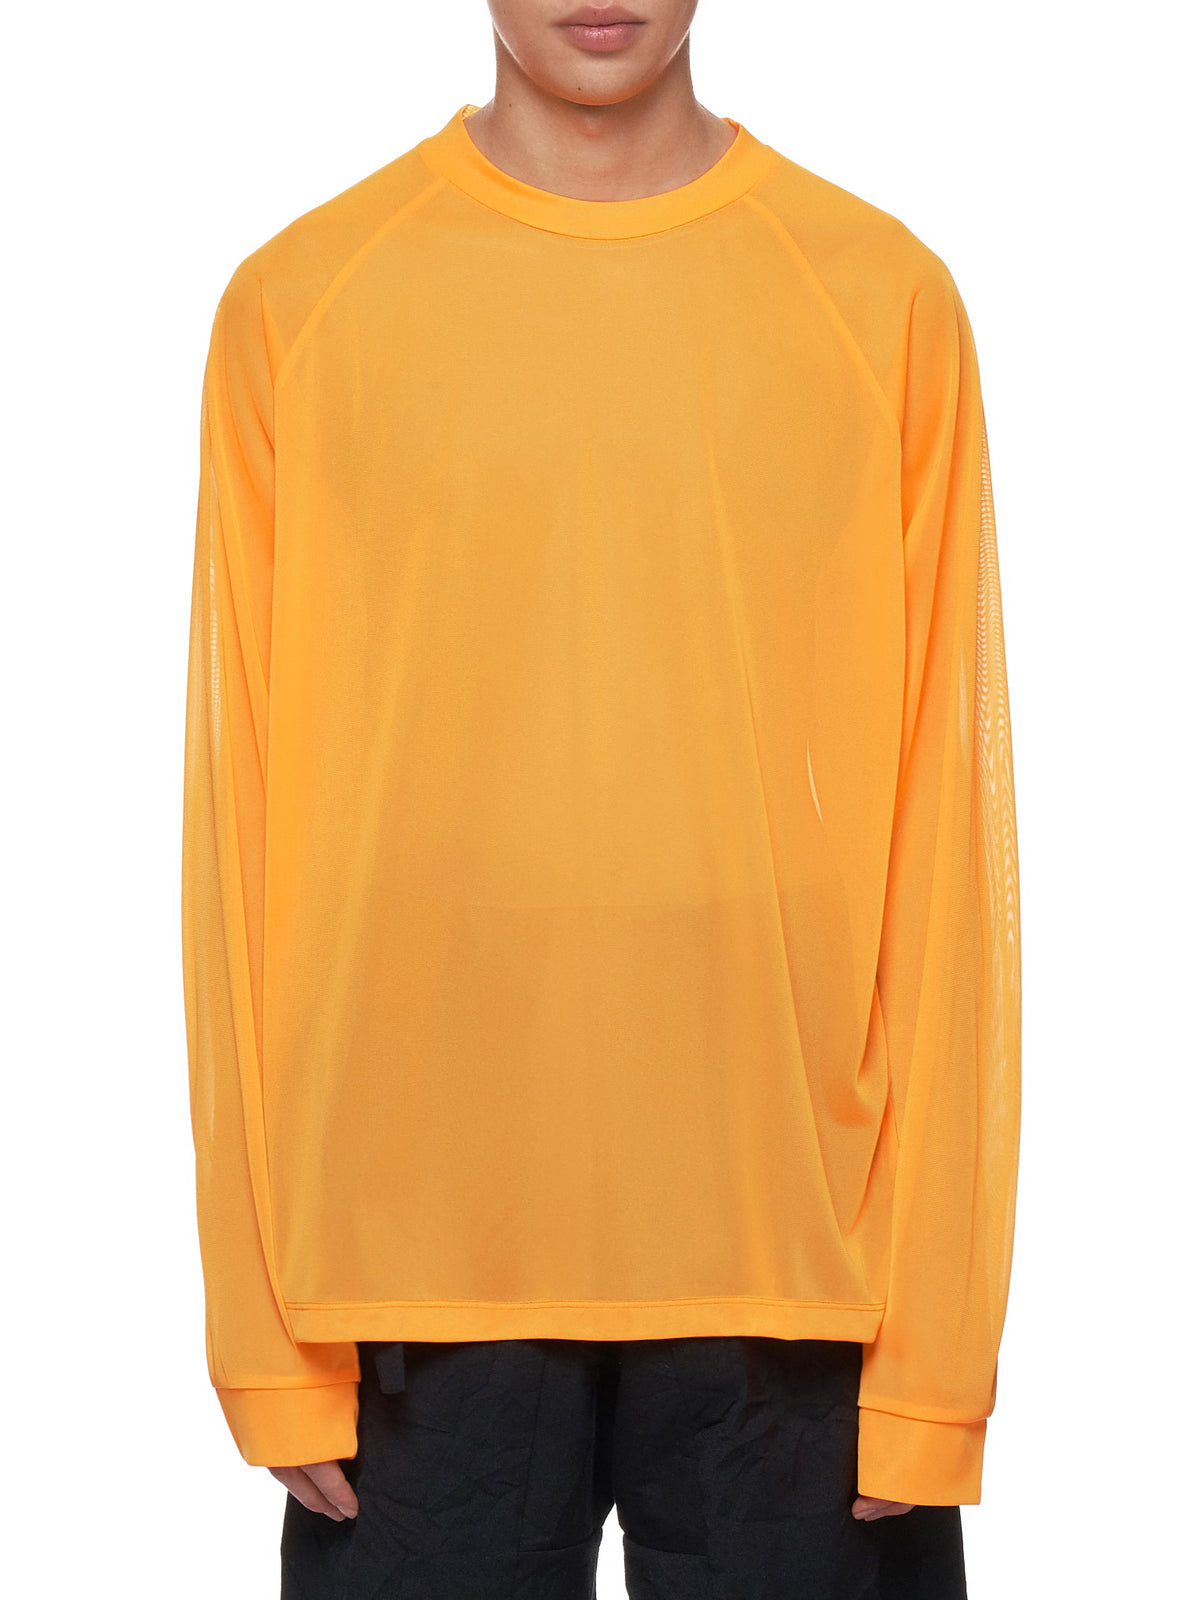 Neon Orange Long Sleeve (BL0053-NEON-ORANGE)